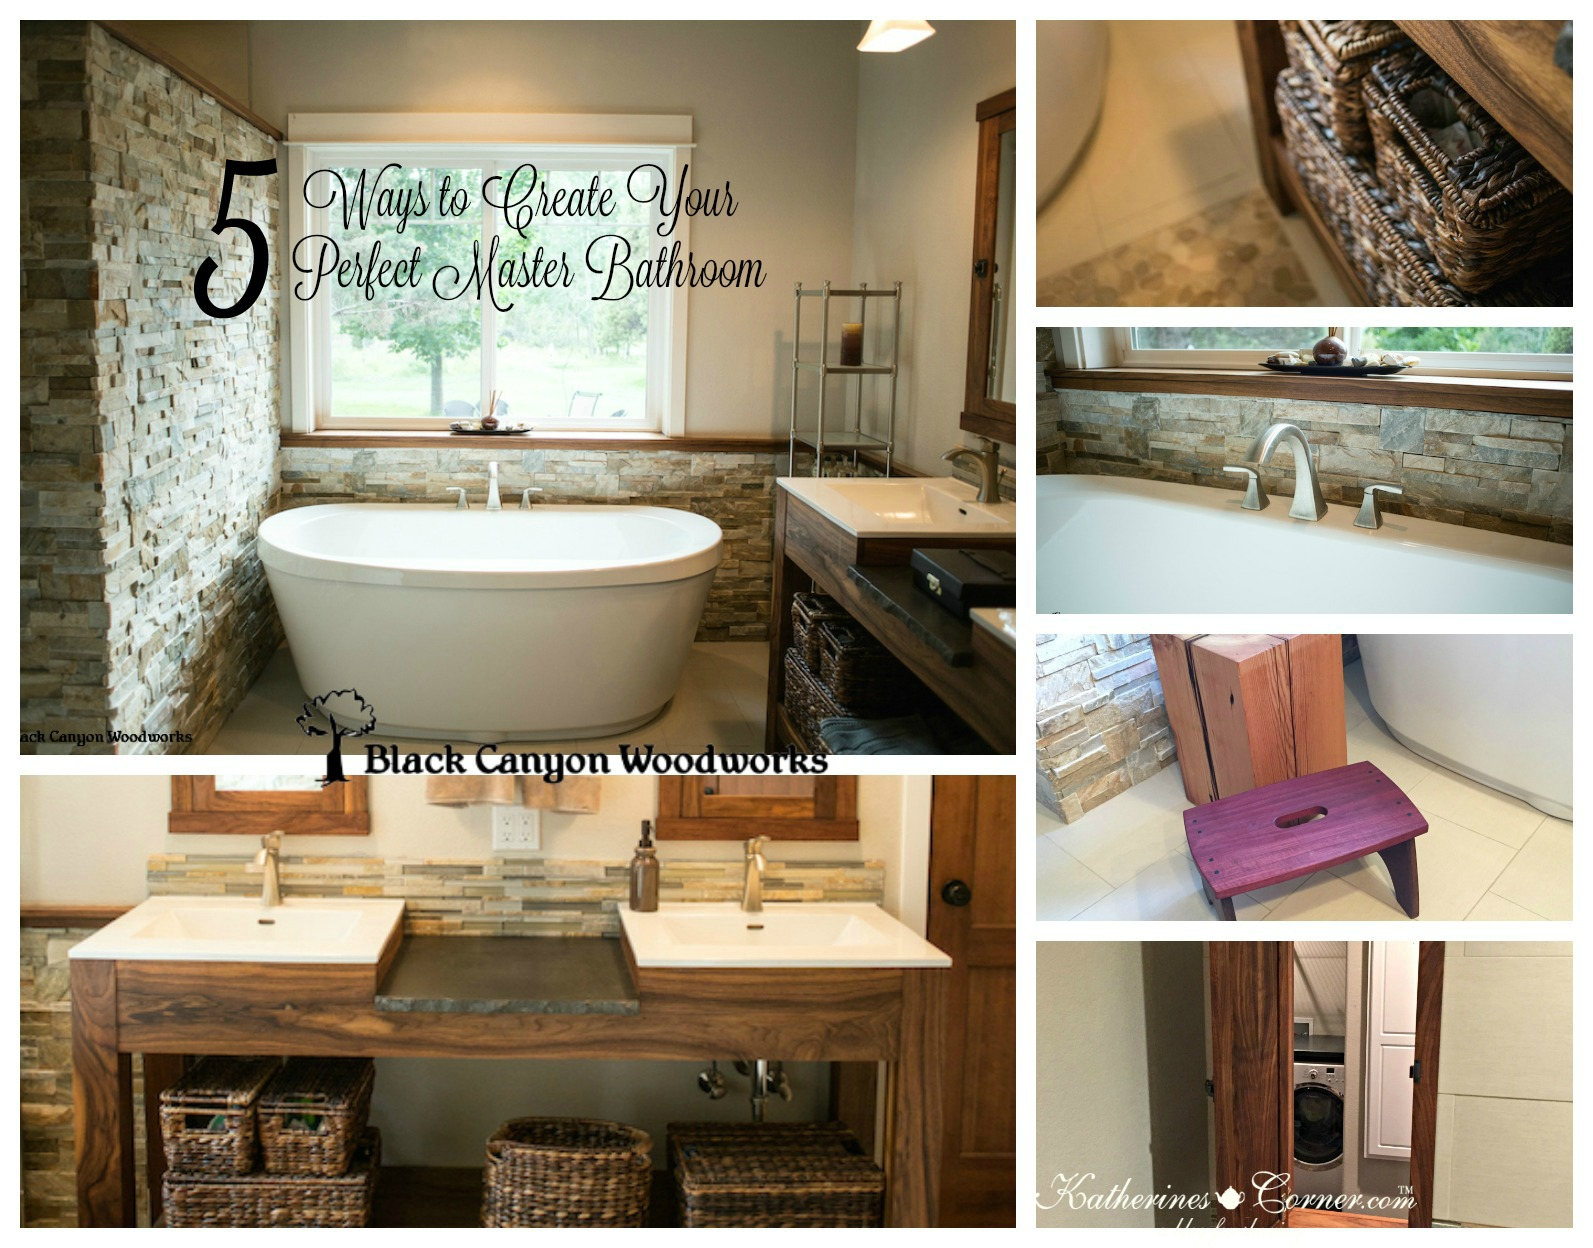 5 ways to create your perfect master bathroom katherines for Perfect master bathroom